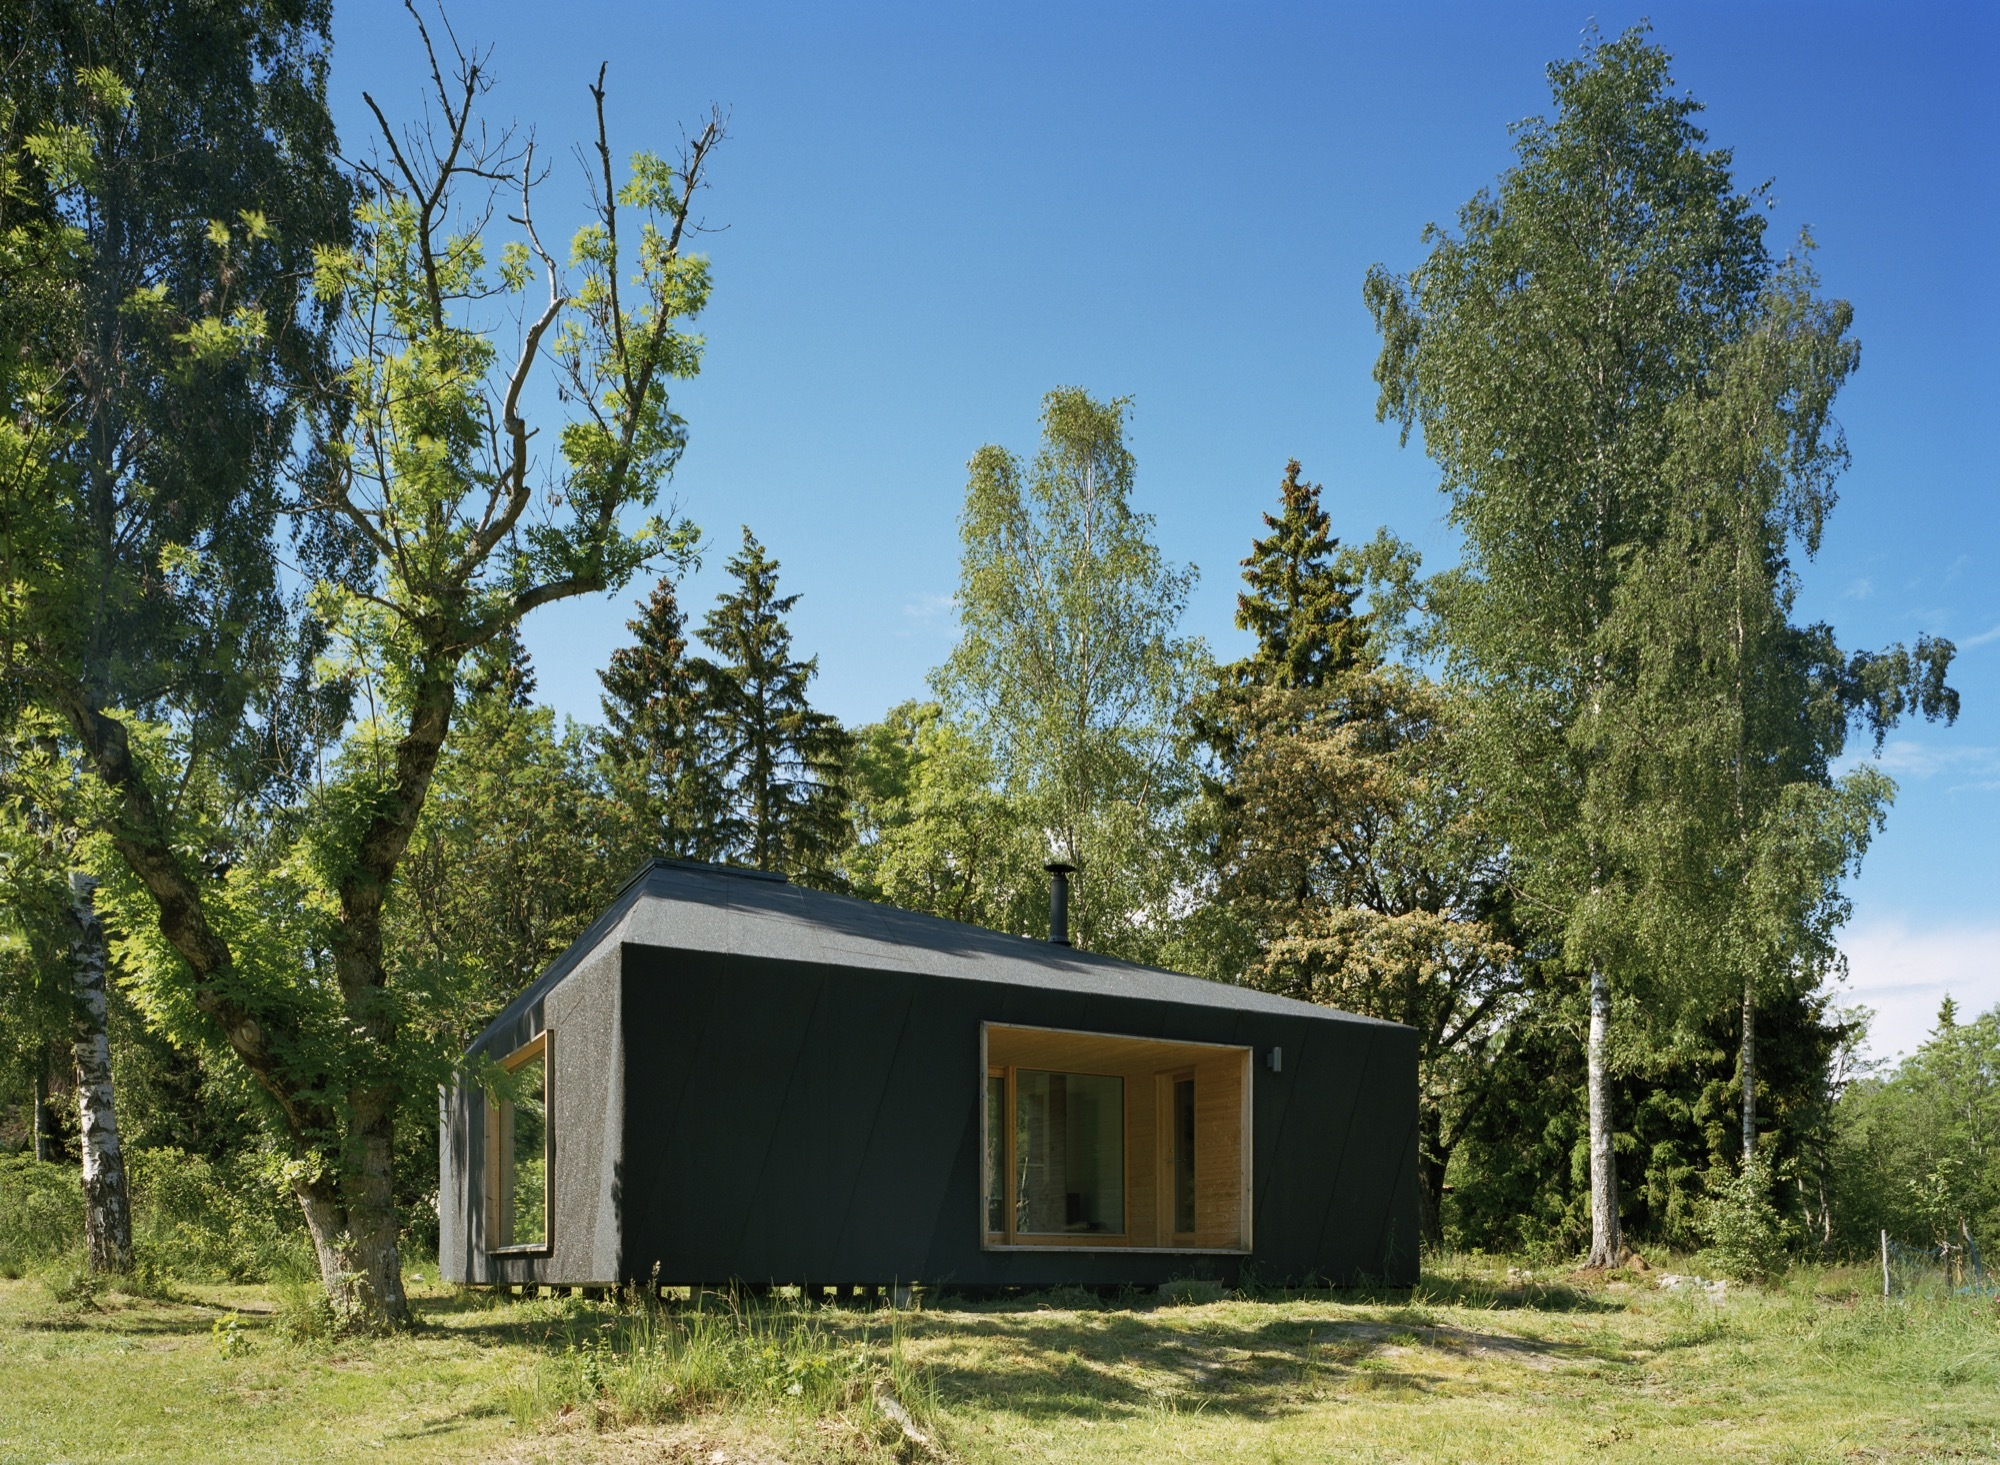 Elevates-design-of-the-cabin-makes-it-eco-friendly-with-ease